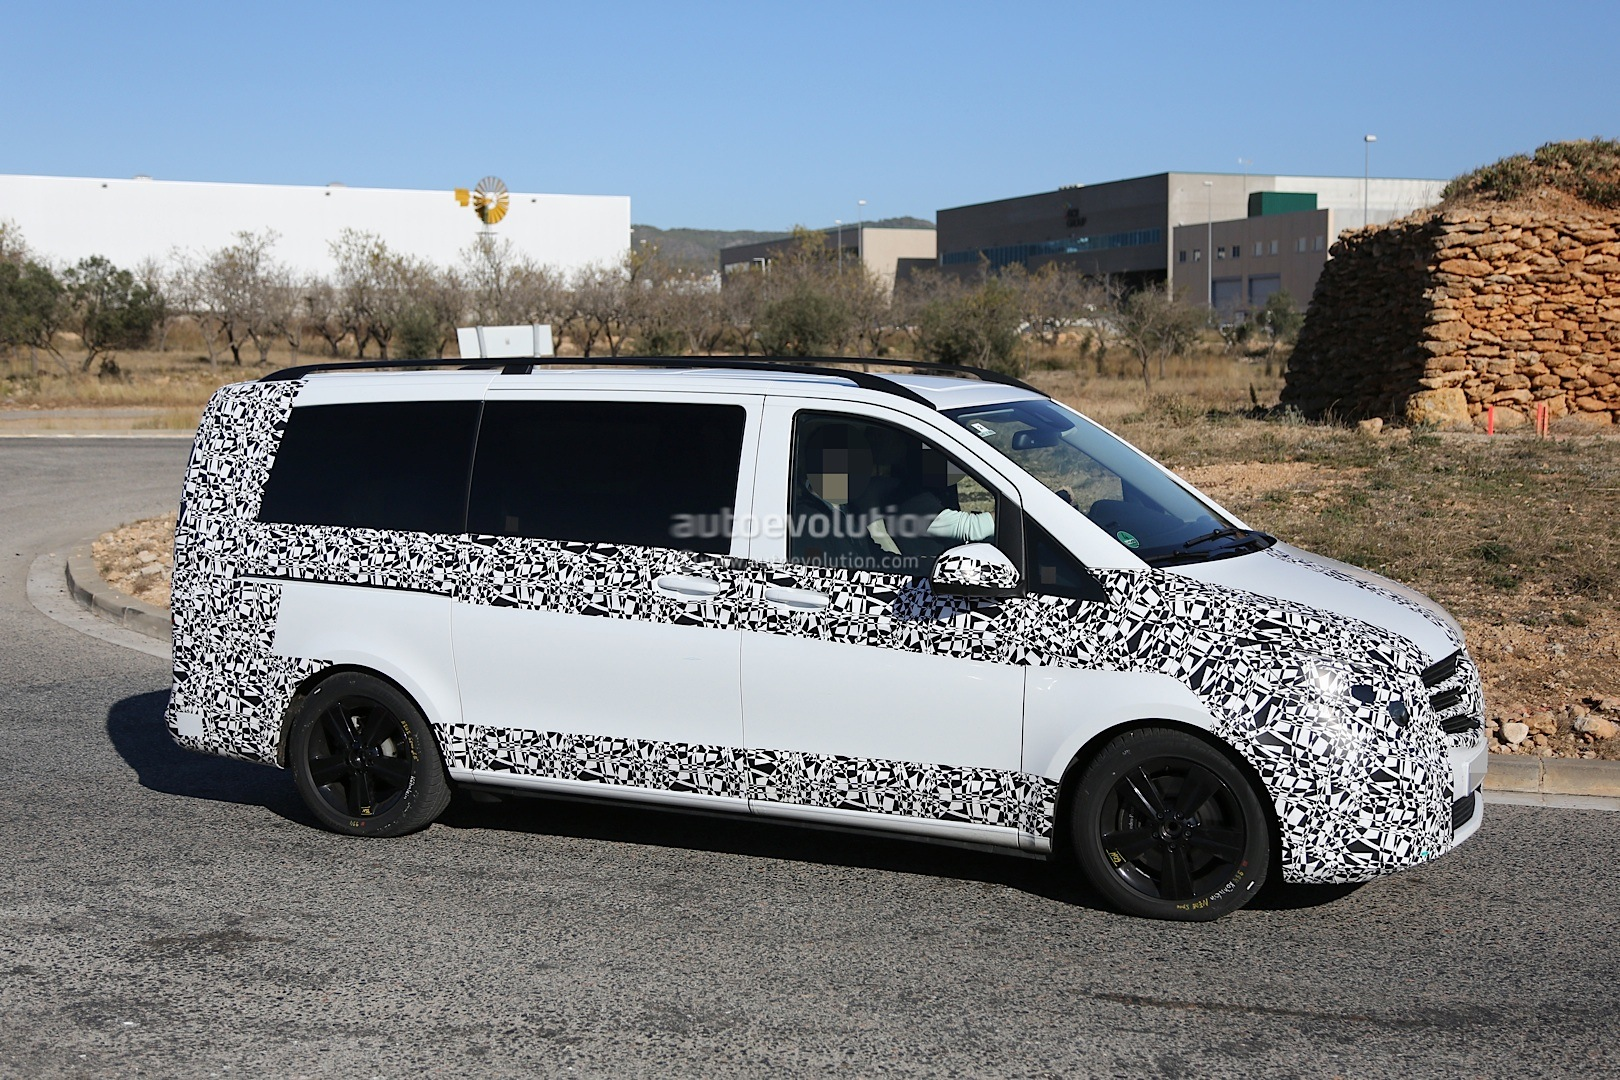 2014 - [Mercedes] Classe V/Vito - Page 4 Herd-of-2015-mercedes-benz-v-class-prototypes-caught-in-the-open-photo-gallery-1080p-10